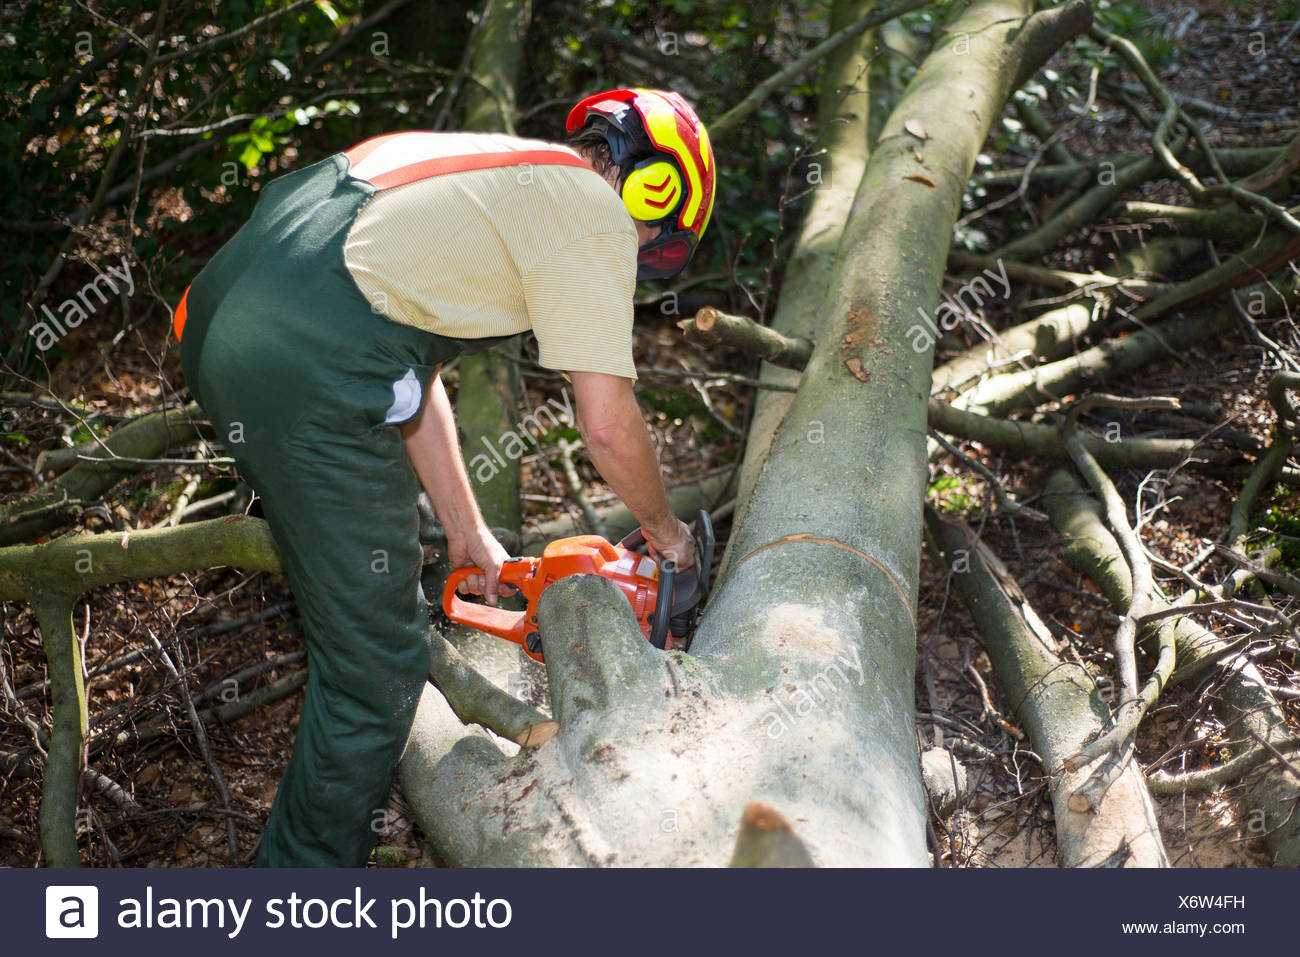 lumber jack during work with protective clothing Stock Photo